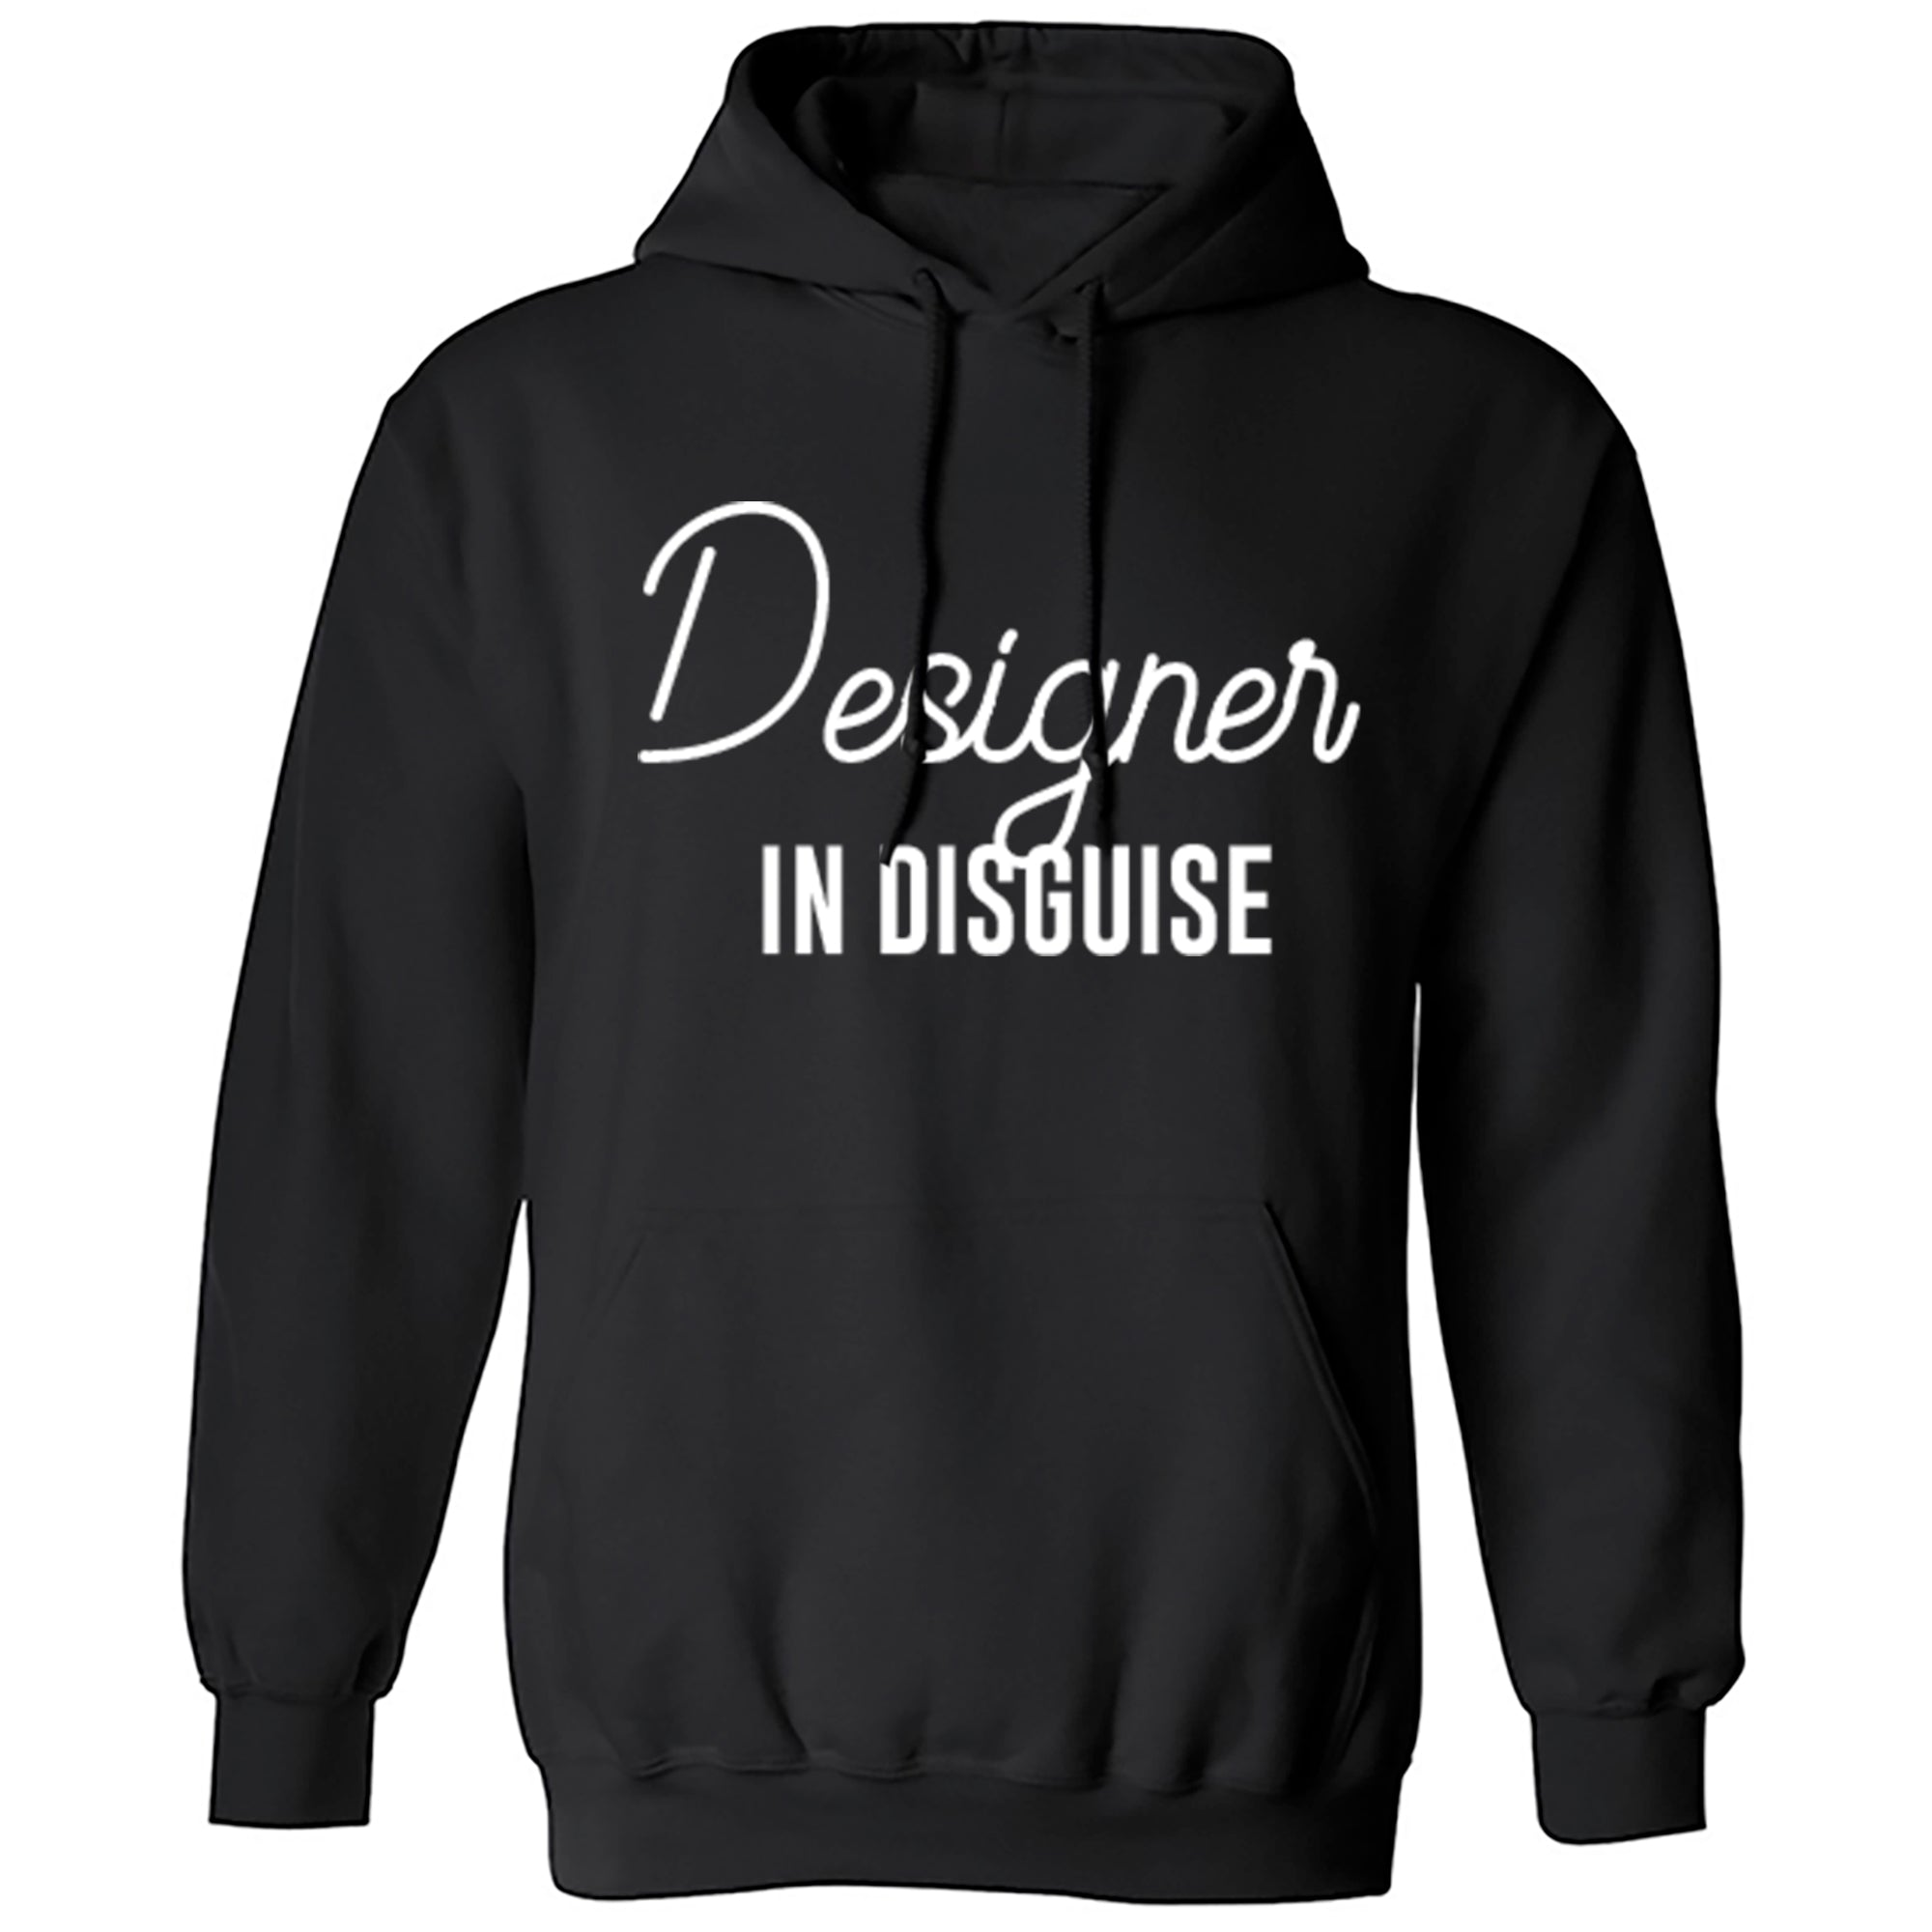 Designer In Disguise Unisex Hoodie S0055 - Illustrated Identity Ltd.